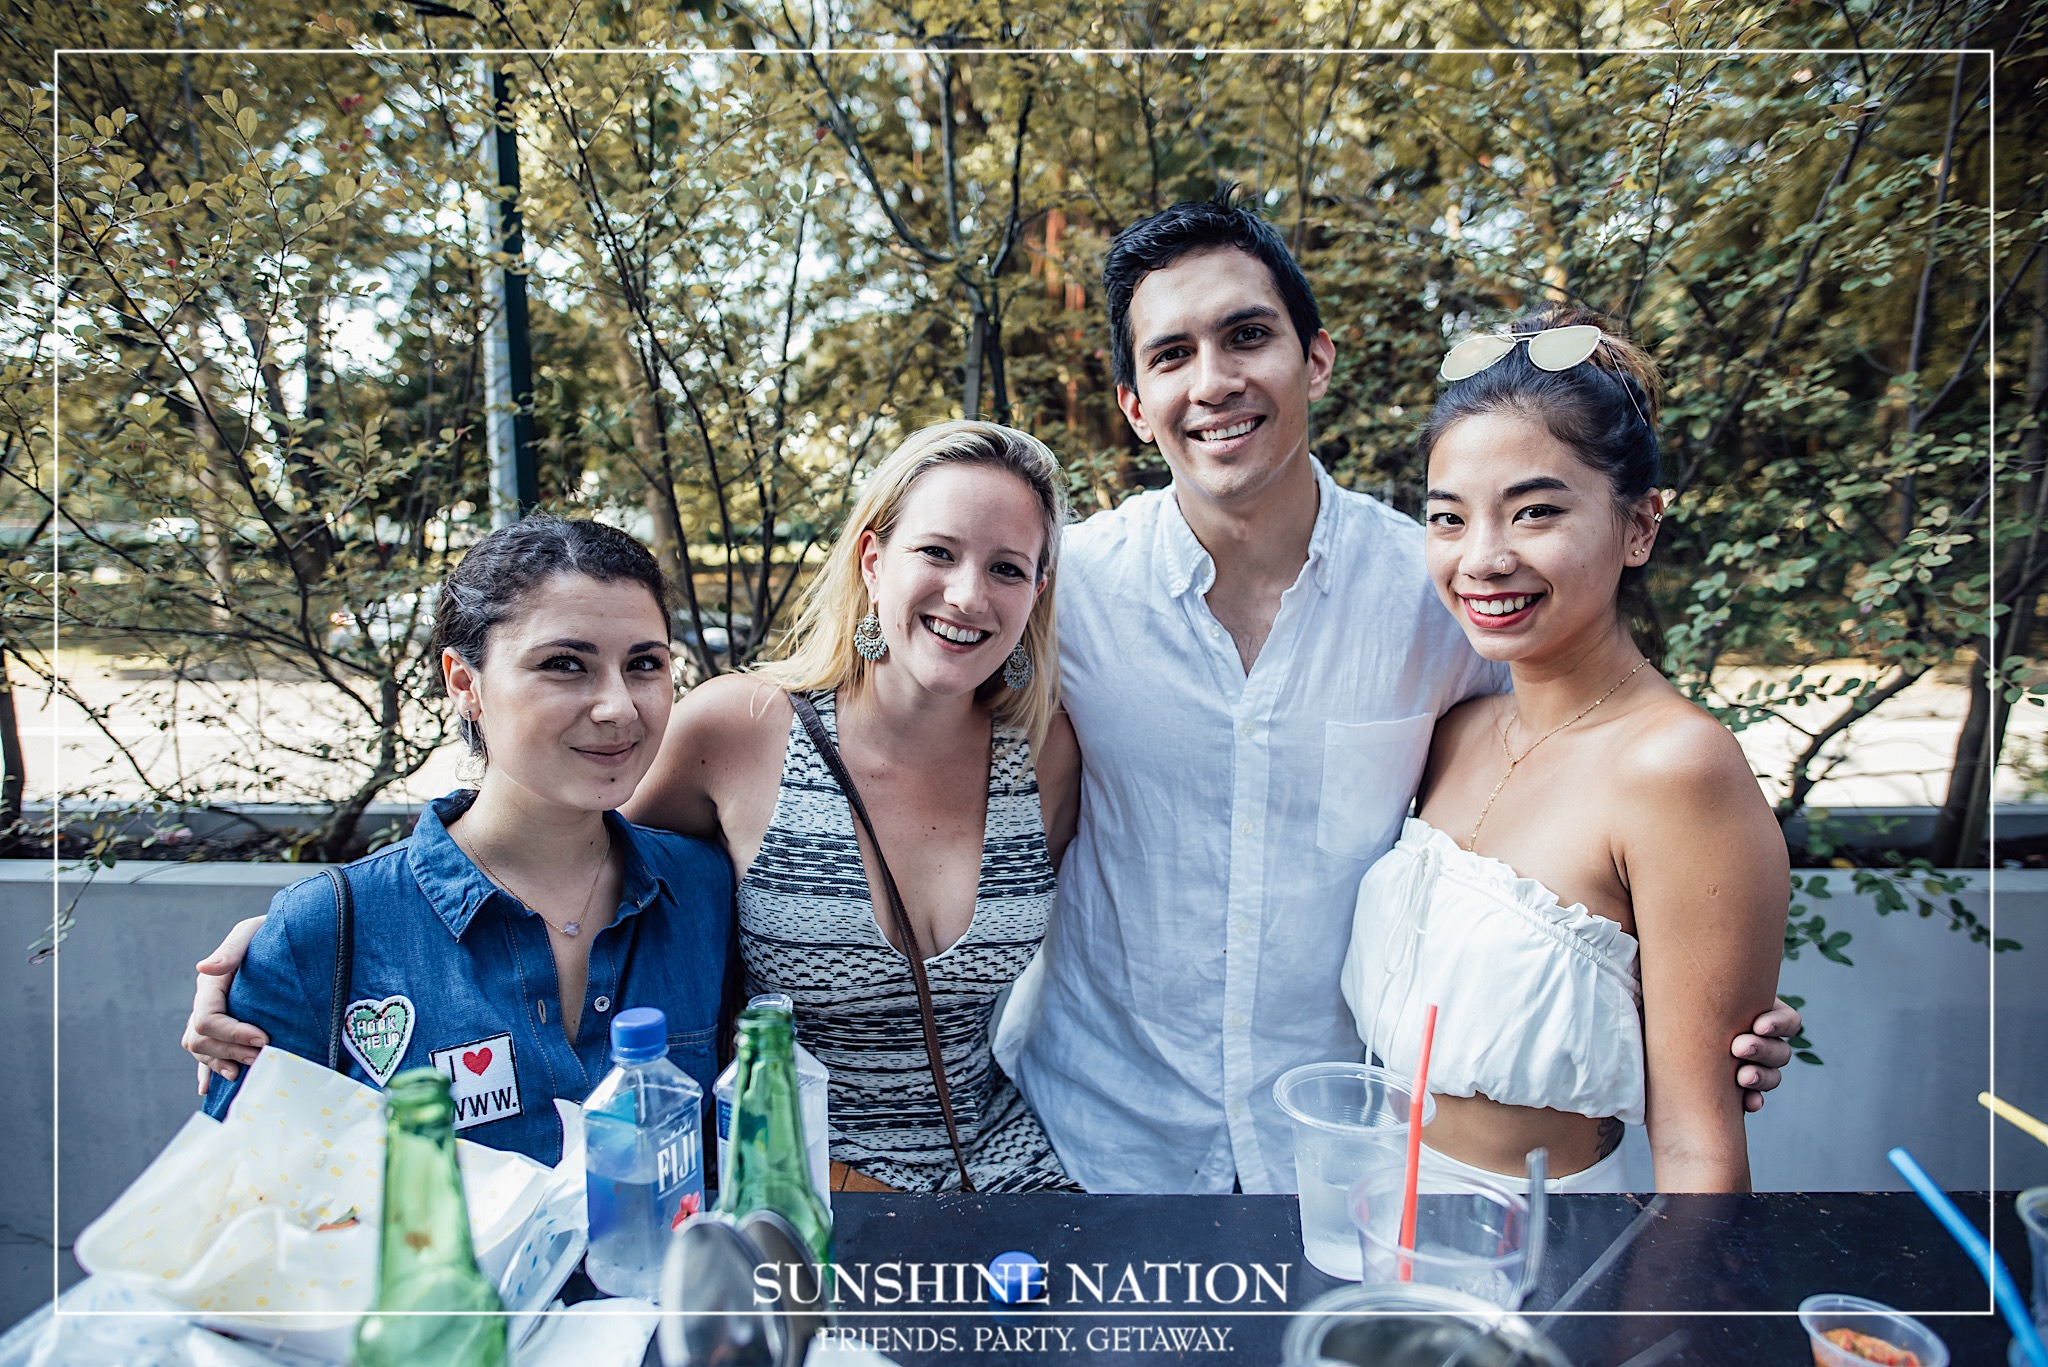 18092016_SunshineNation_Colossal070_Watermarked.jpg